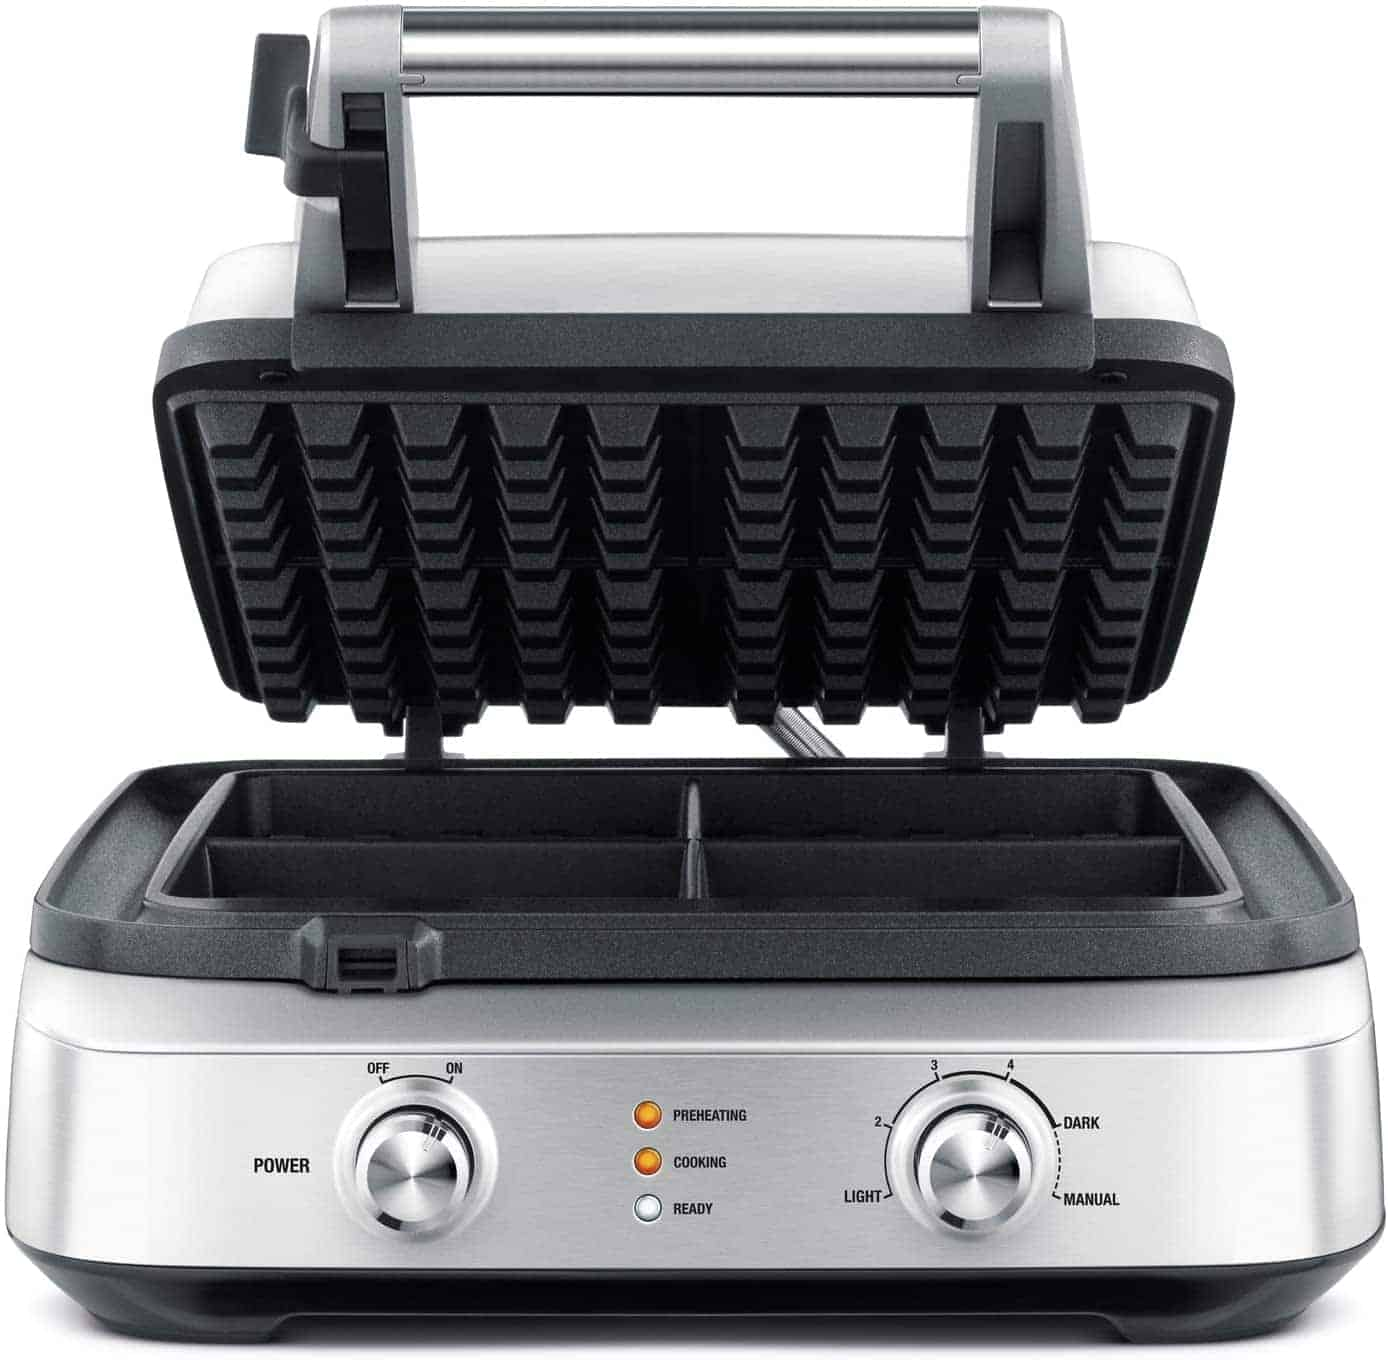 Breville BWM604BSS Waffle Brushed Stainless Steel Iron